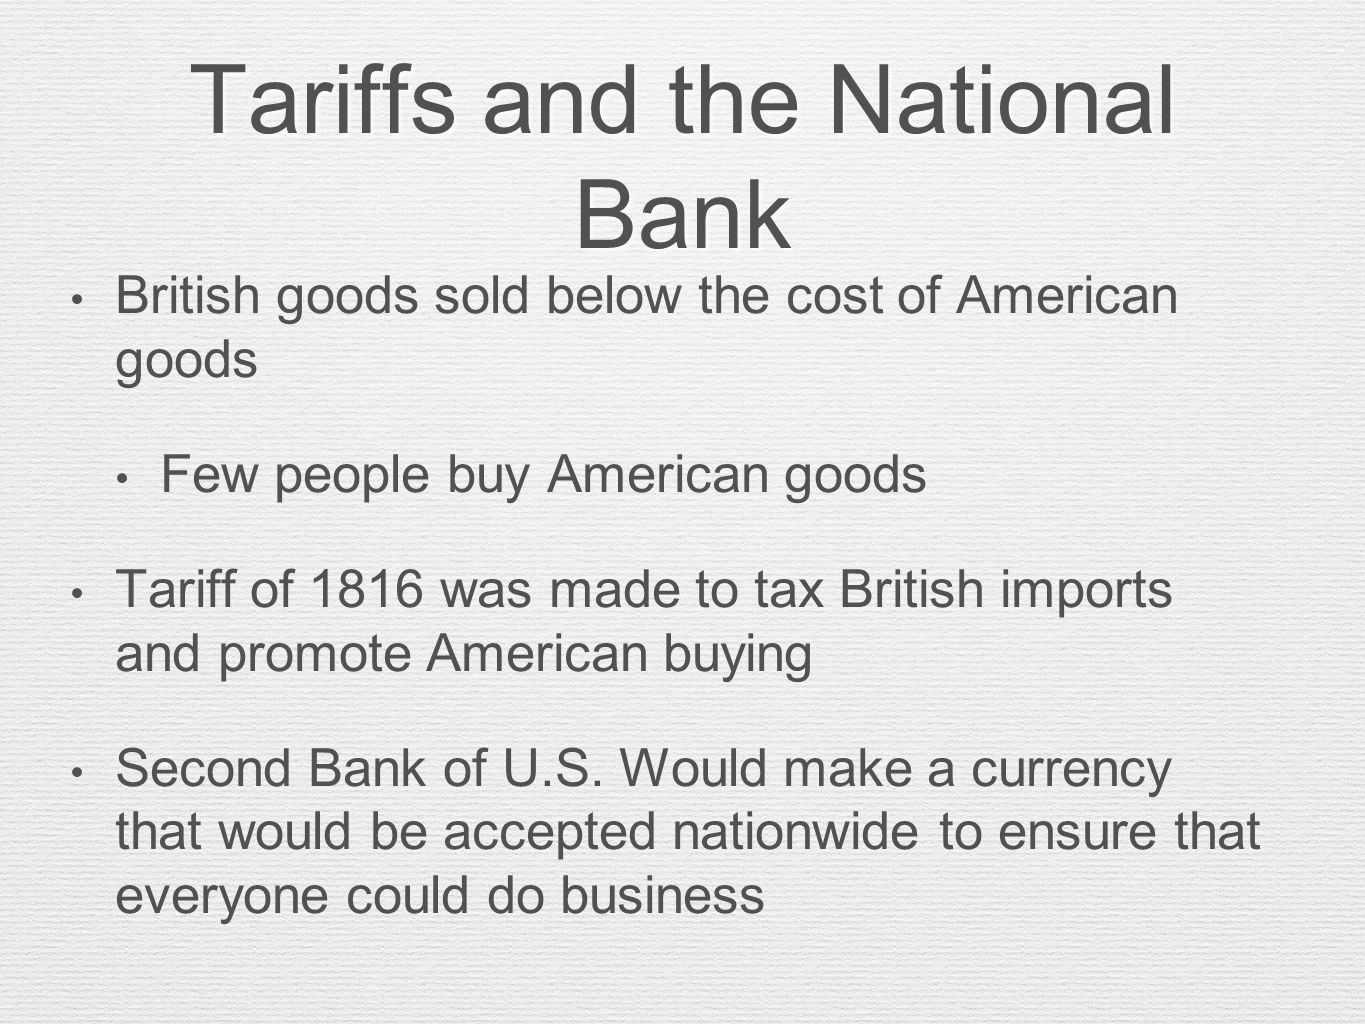 Tariffs and the National Bank